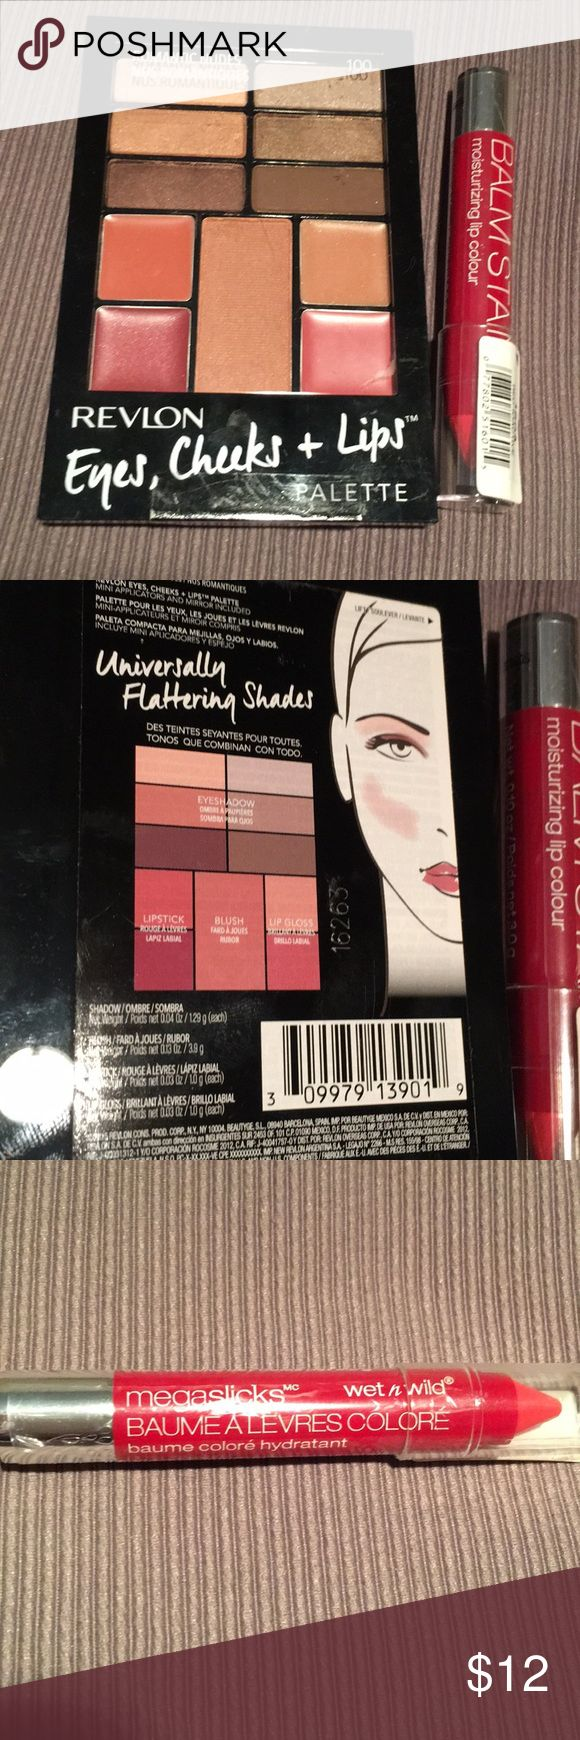 """NWT REVLON EYES, CHEEKS & LIPS + bonus BALM STAIN Revlon Eyes, Cheeks, + Lips Palette #100 Romantic Nudes makes it easy to take your """"look"""" along w/you for the evening! Features great selection of smoky yet neutral colors. As a bonus, I'm also throwing in a """"wet n' wild"""" megaslicks™️ Balm Stain #160A Red-Ioactive moisturising lip color. Price is firm unless you bundle! Revlon Makeup Eyeshadow"""